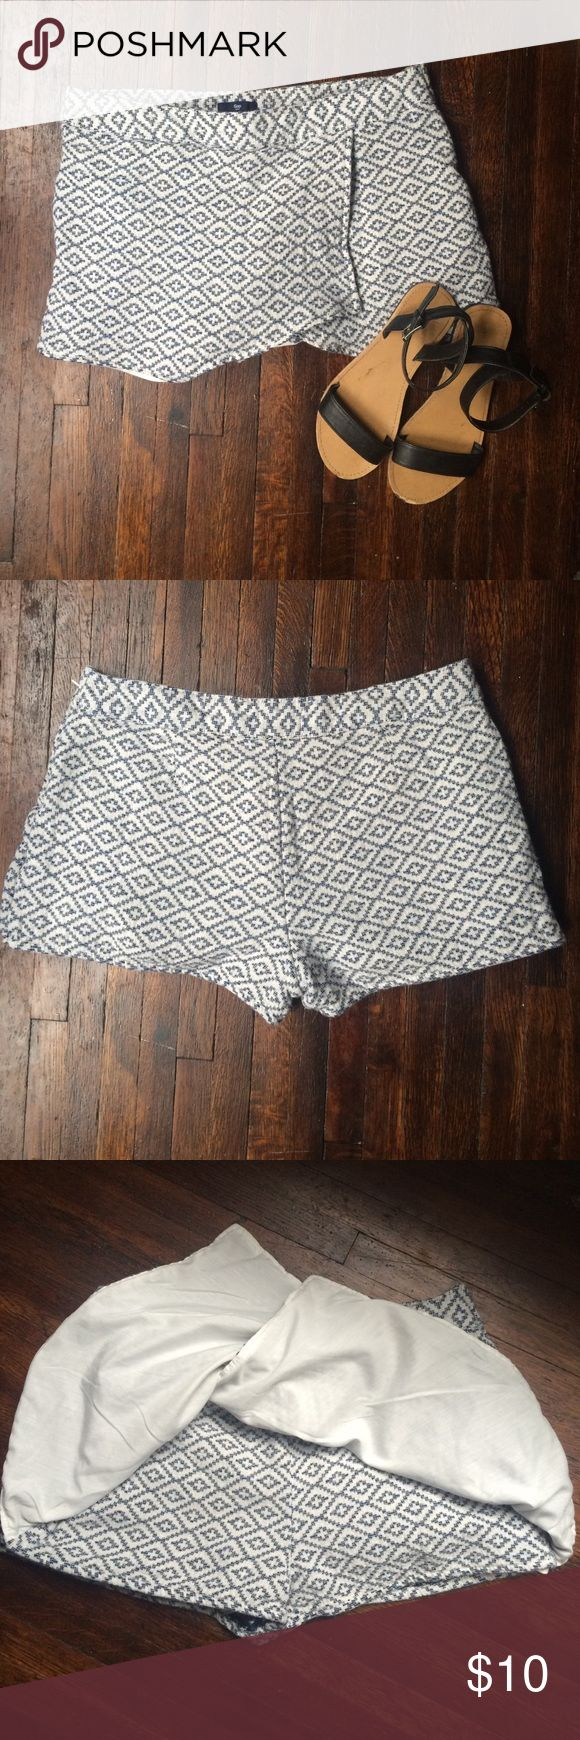 Gap printed diamonds skort Gap factory printed diamonds skort. Size 6, true to size. 100% cotton shell; 70% polyester, 30% cotton lining. Thick material for shell.  Invisible Zipper and metal clamps on the side. Worn only a handful of times--great quality! GAP Shorts Skorts